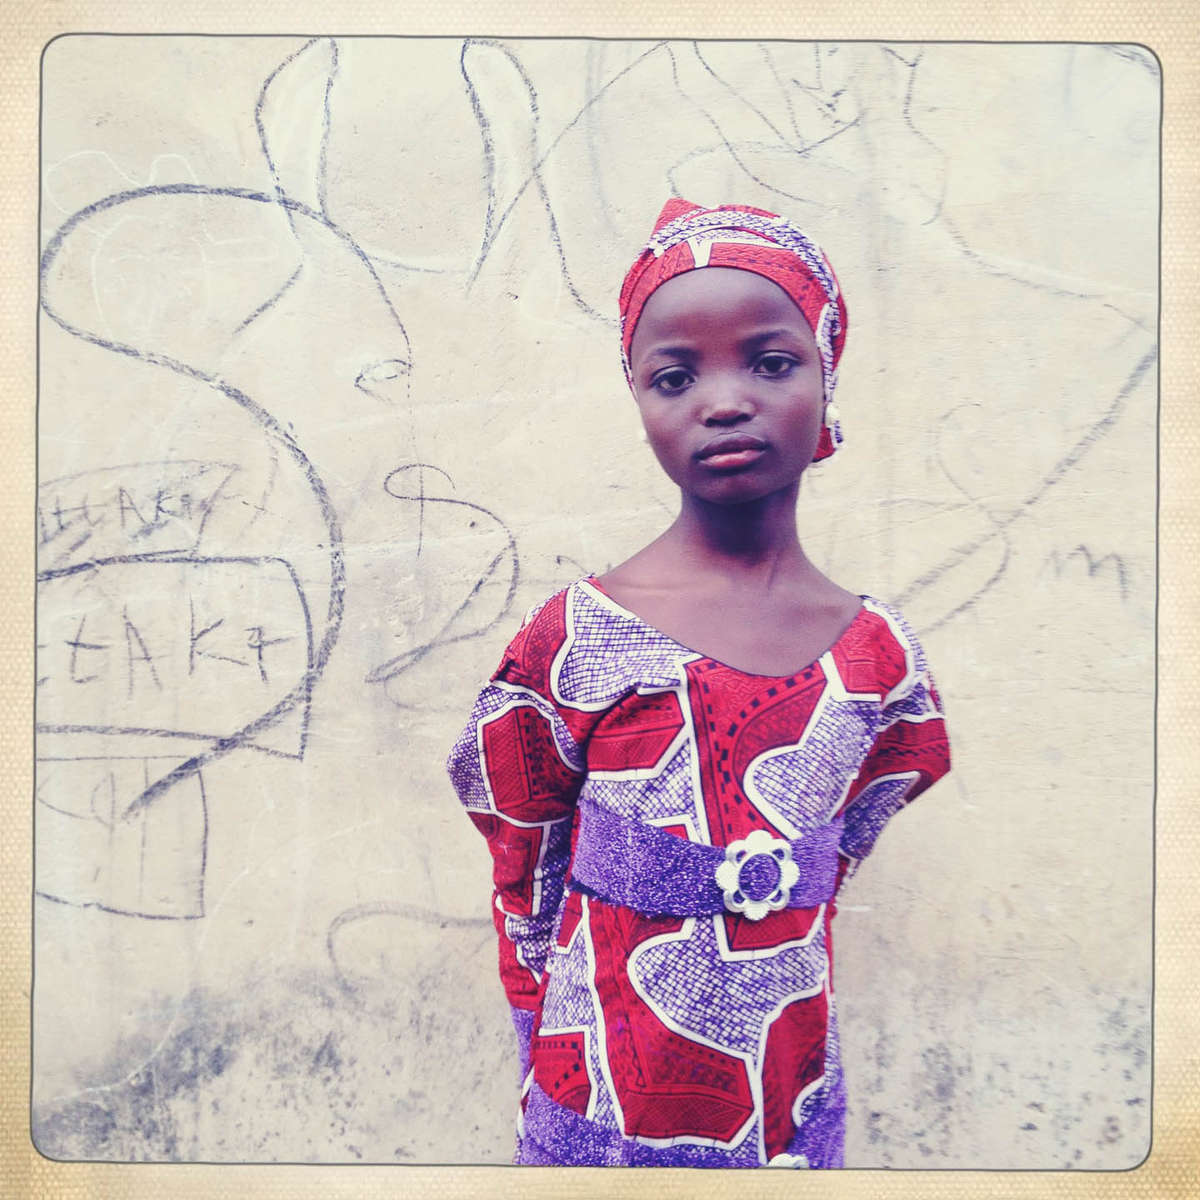 Wedding guest. Kano, Northern Nigeria. April 2013.